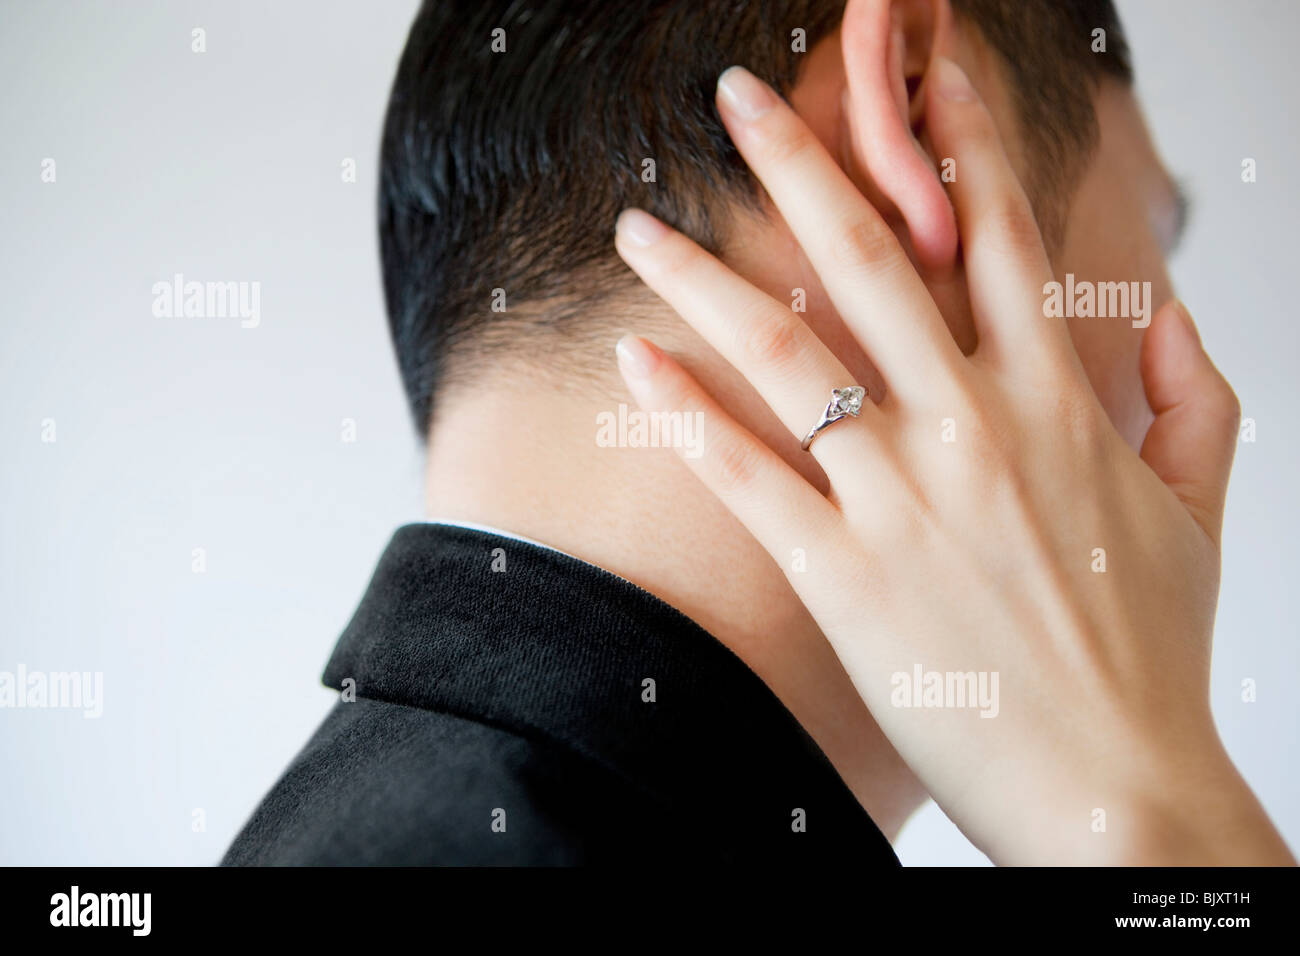 Hand of a young woman touching man's face - Stock Image